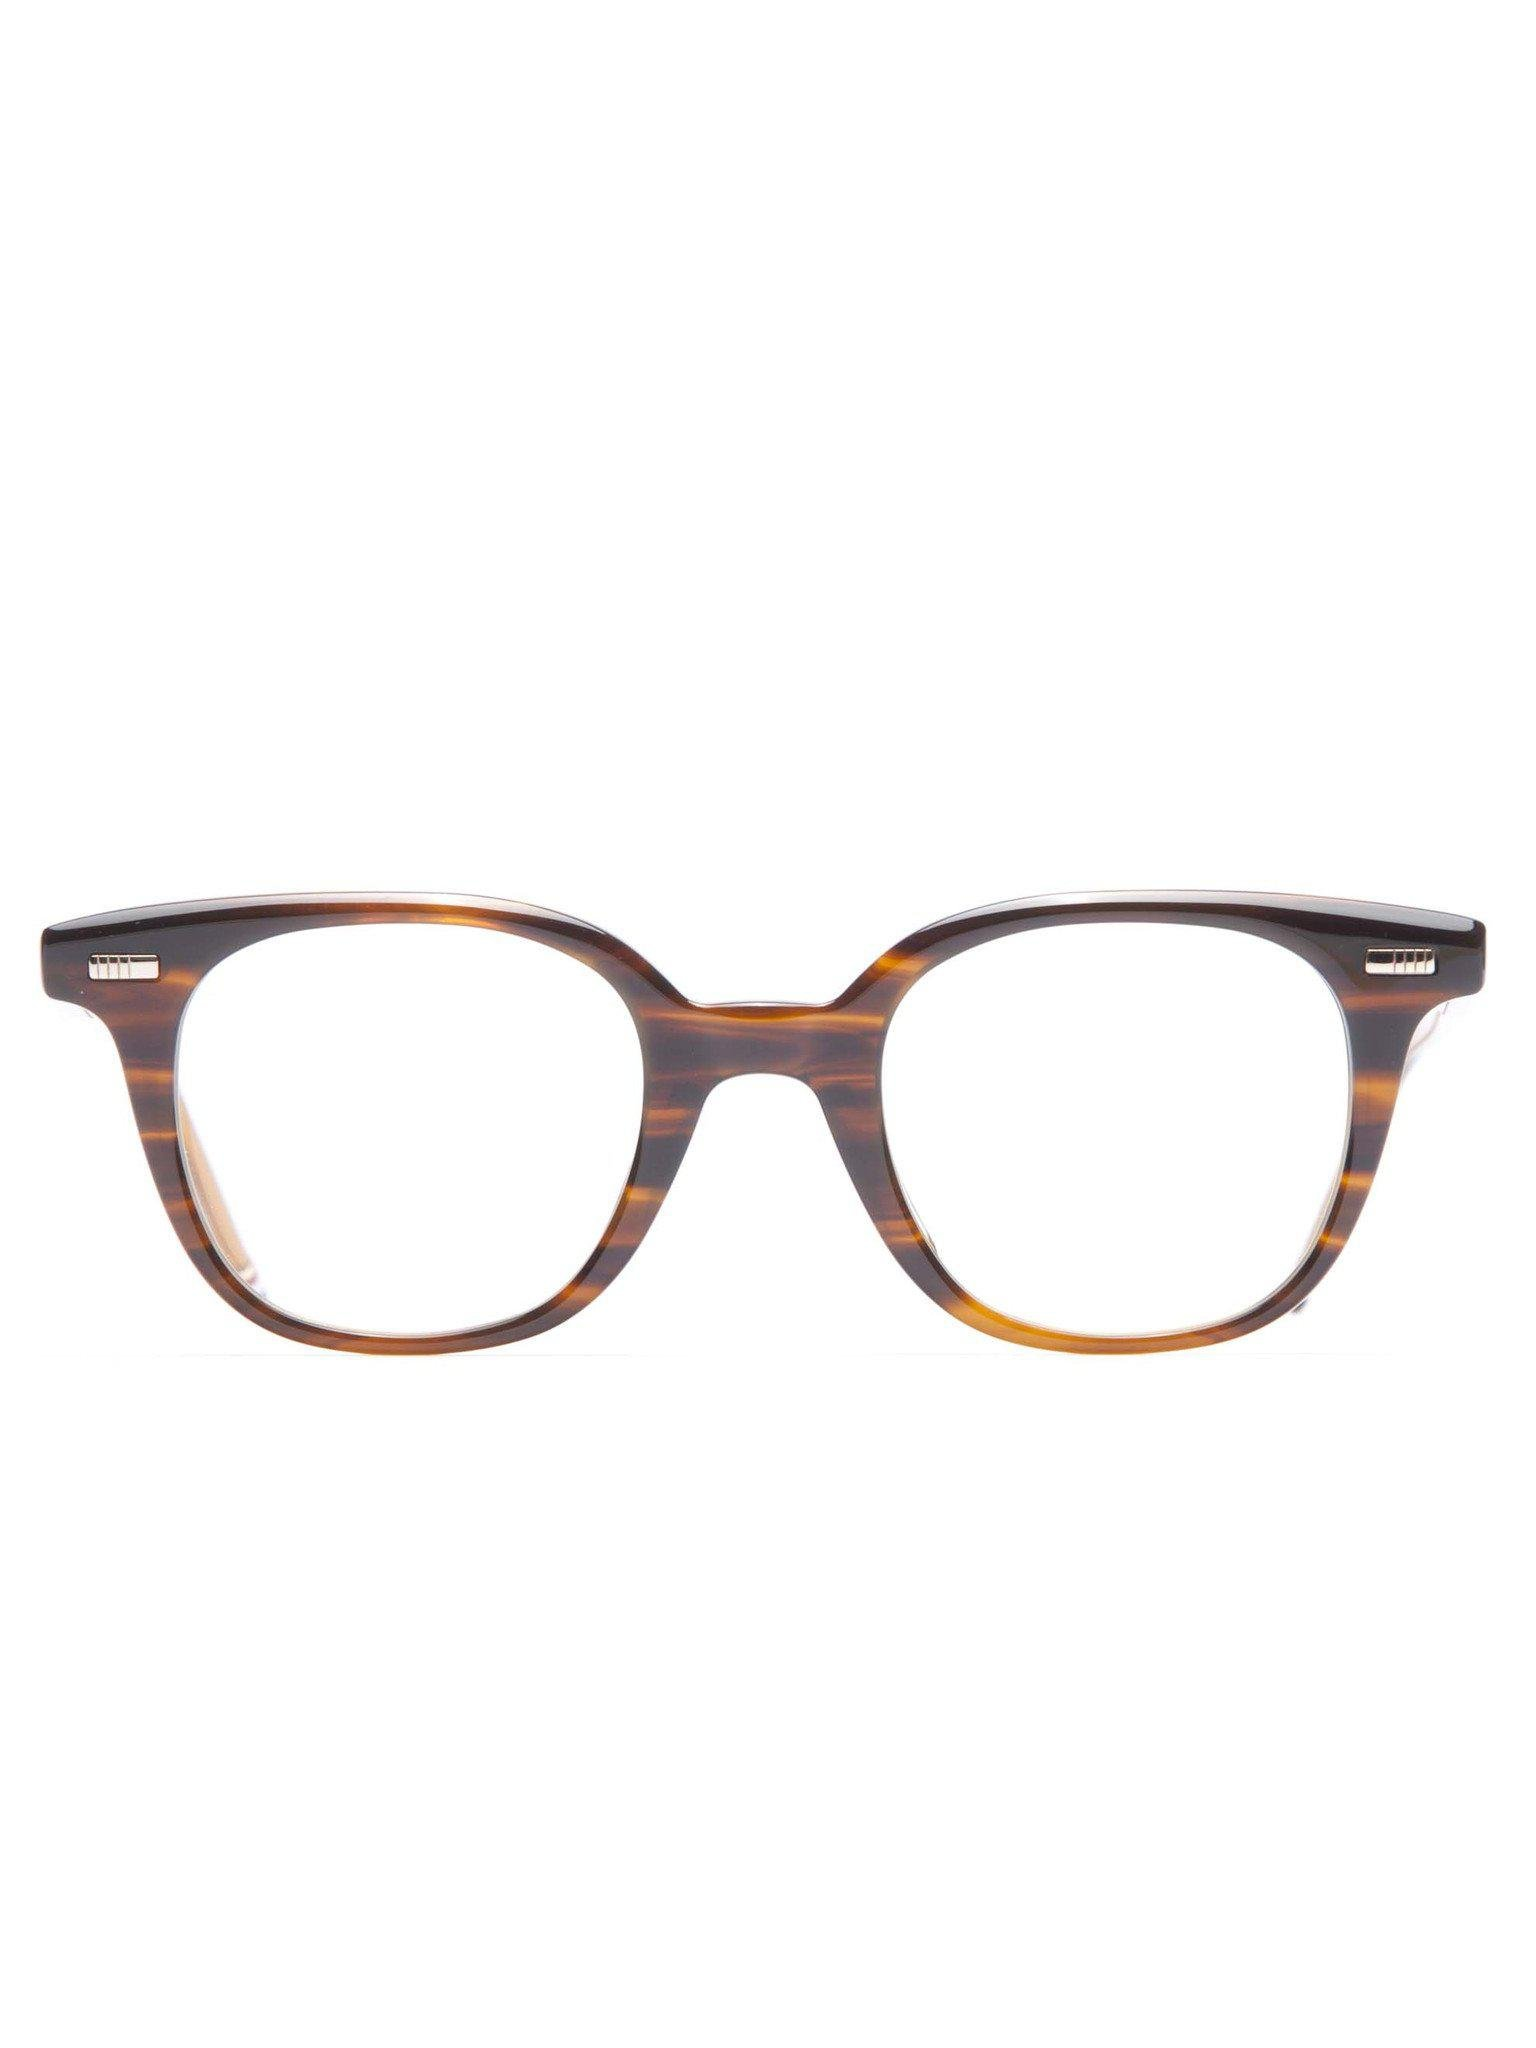 16efad9659c9 Lyst - Thom Browne Tb-405 (optical) in Brown for Men